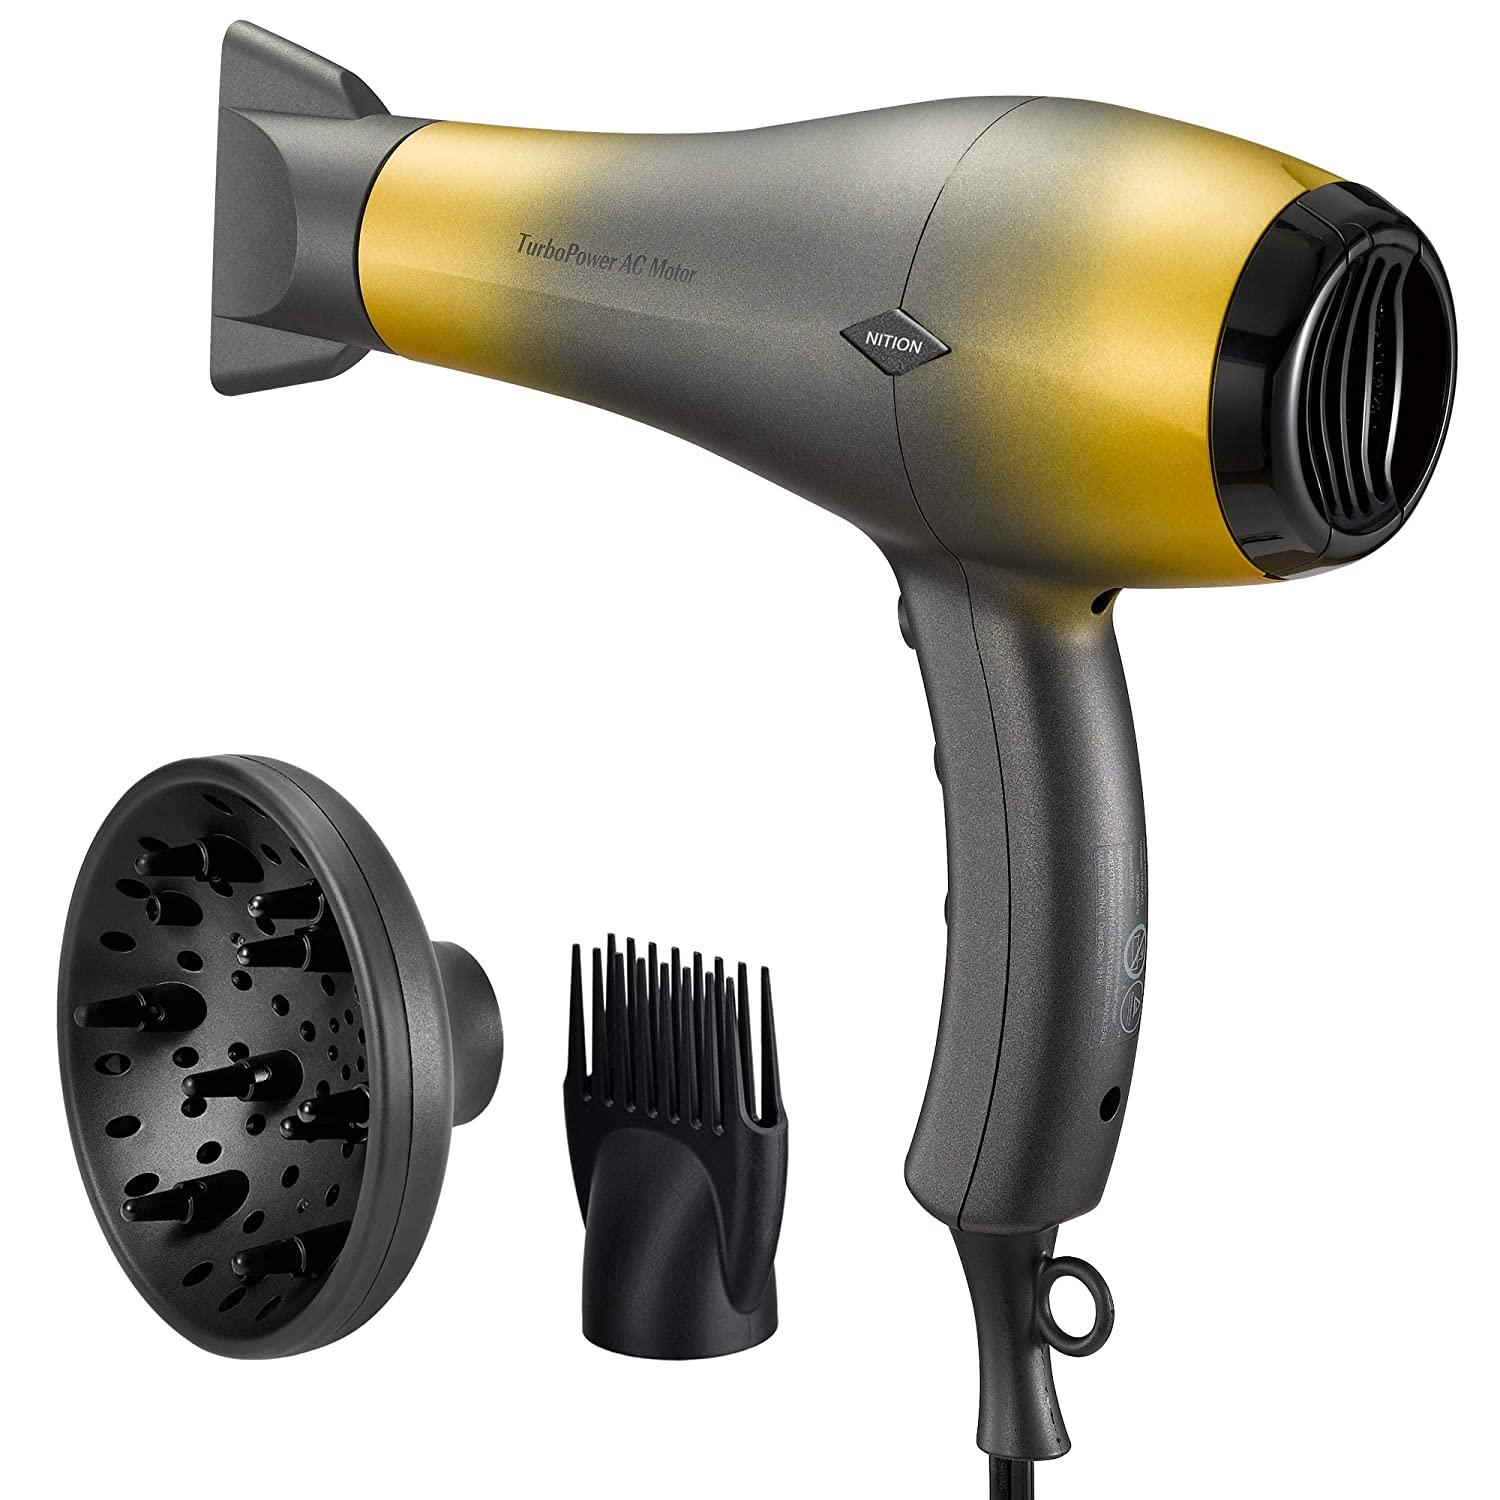 NITION Durable AC Motor Ceramic Salon Hair Dryer with Diffuser,Comb & Nozzle Attachments,1875 Watt Negative Ions Ionic Blow Dryer for Quick Drying,3 Heat & 2 Speed Settings,Cool Shot Butt,Mixture Gold